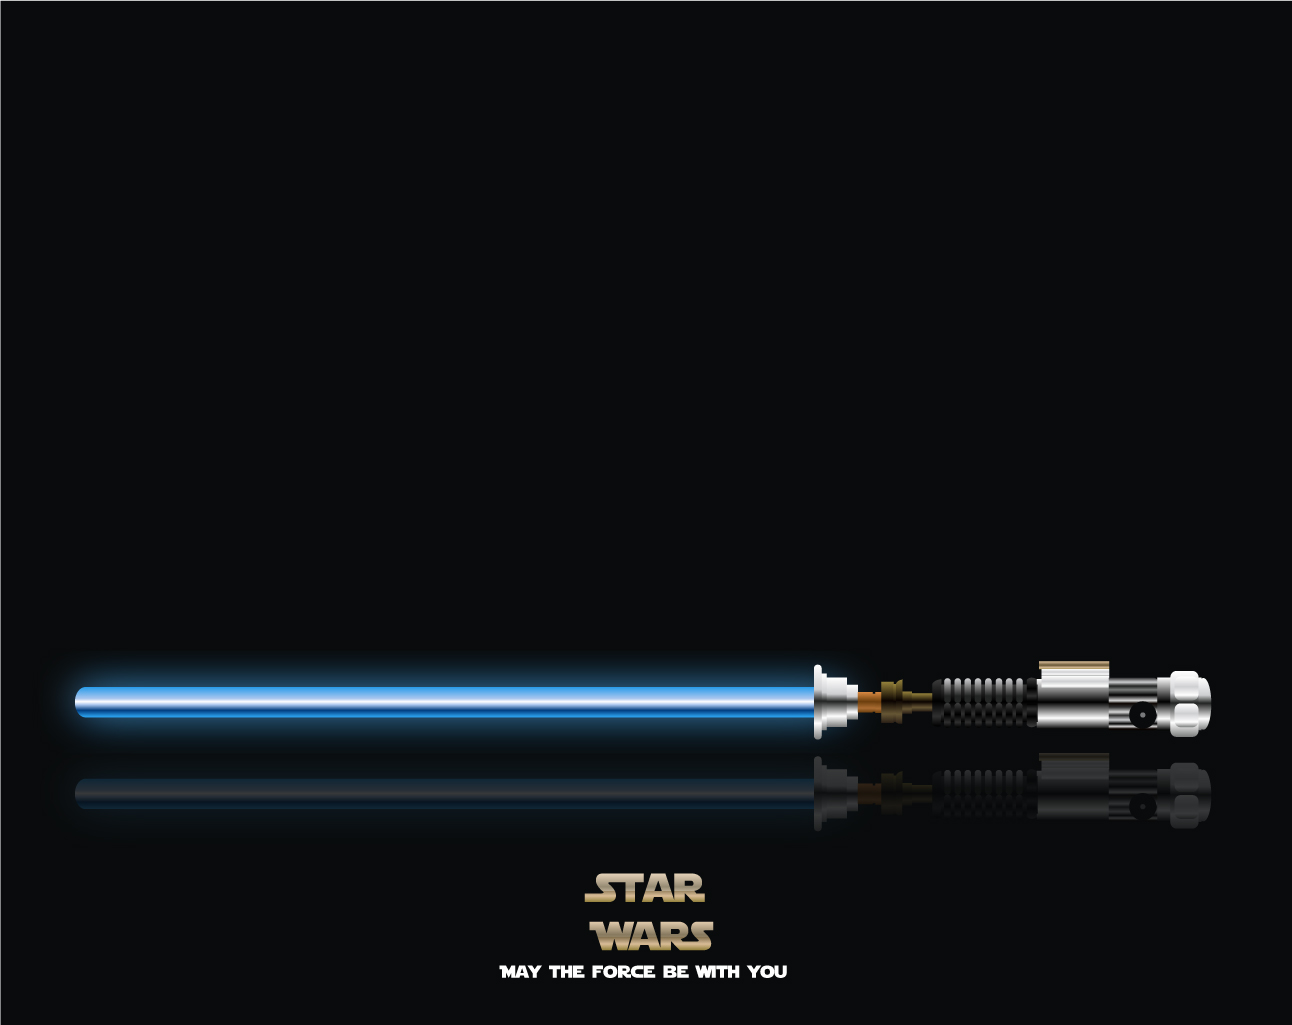 star wars lightsaber wallpaper Car Pictures 1292x1025